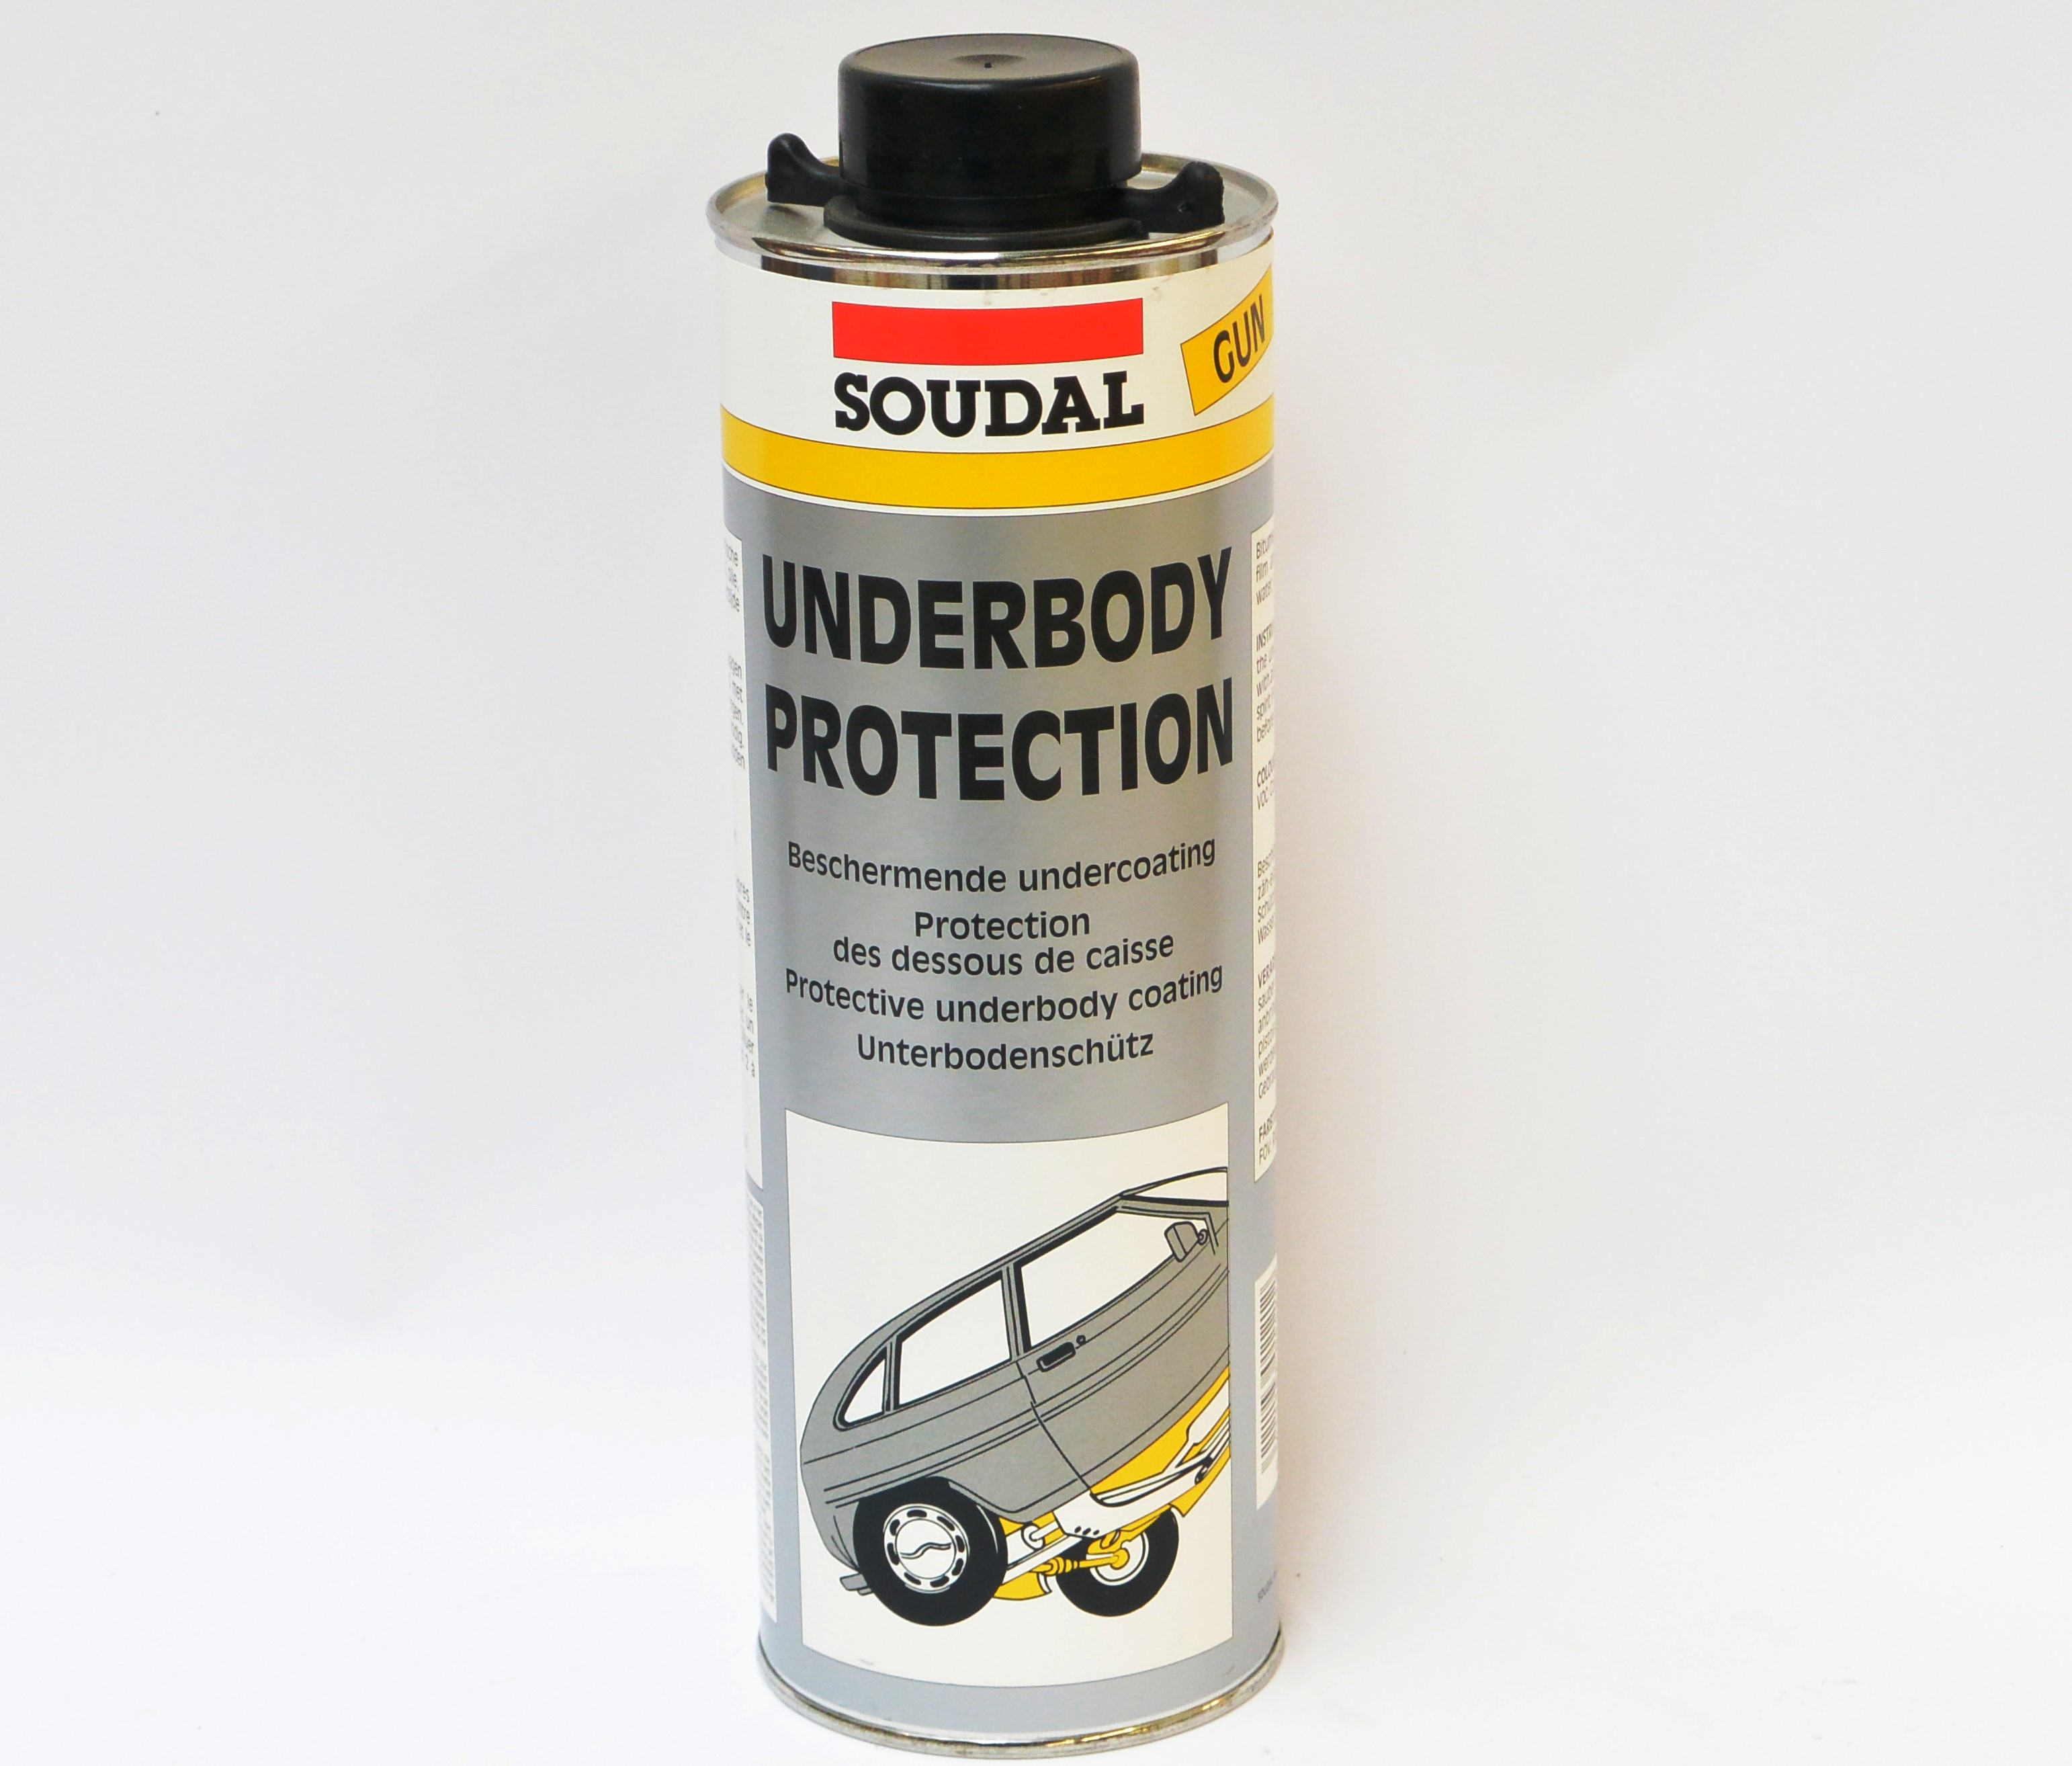 Soudal Underbody Protection